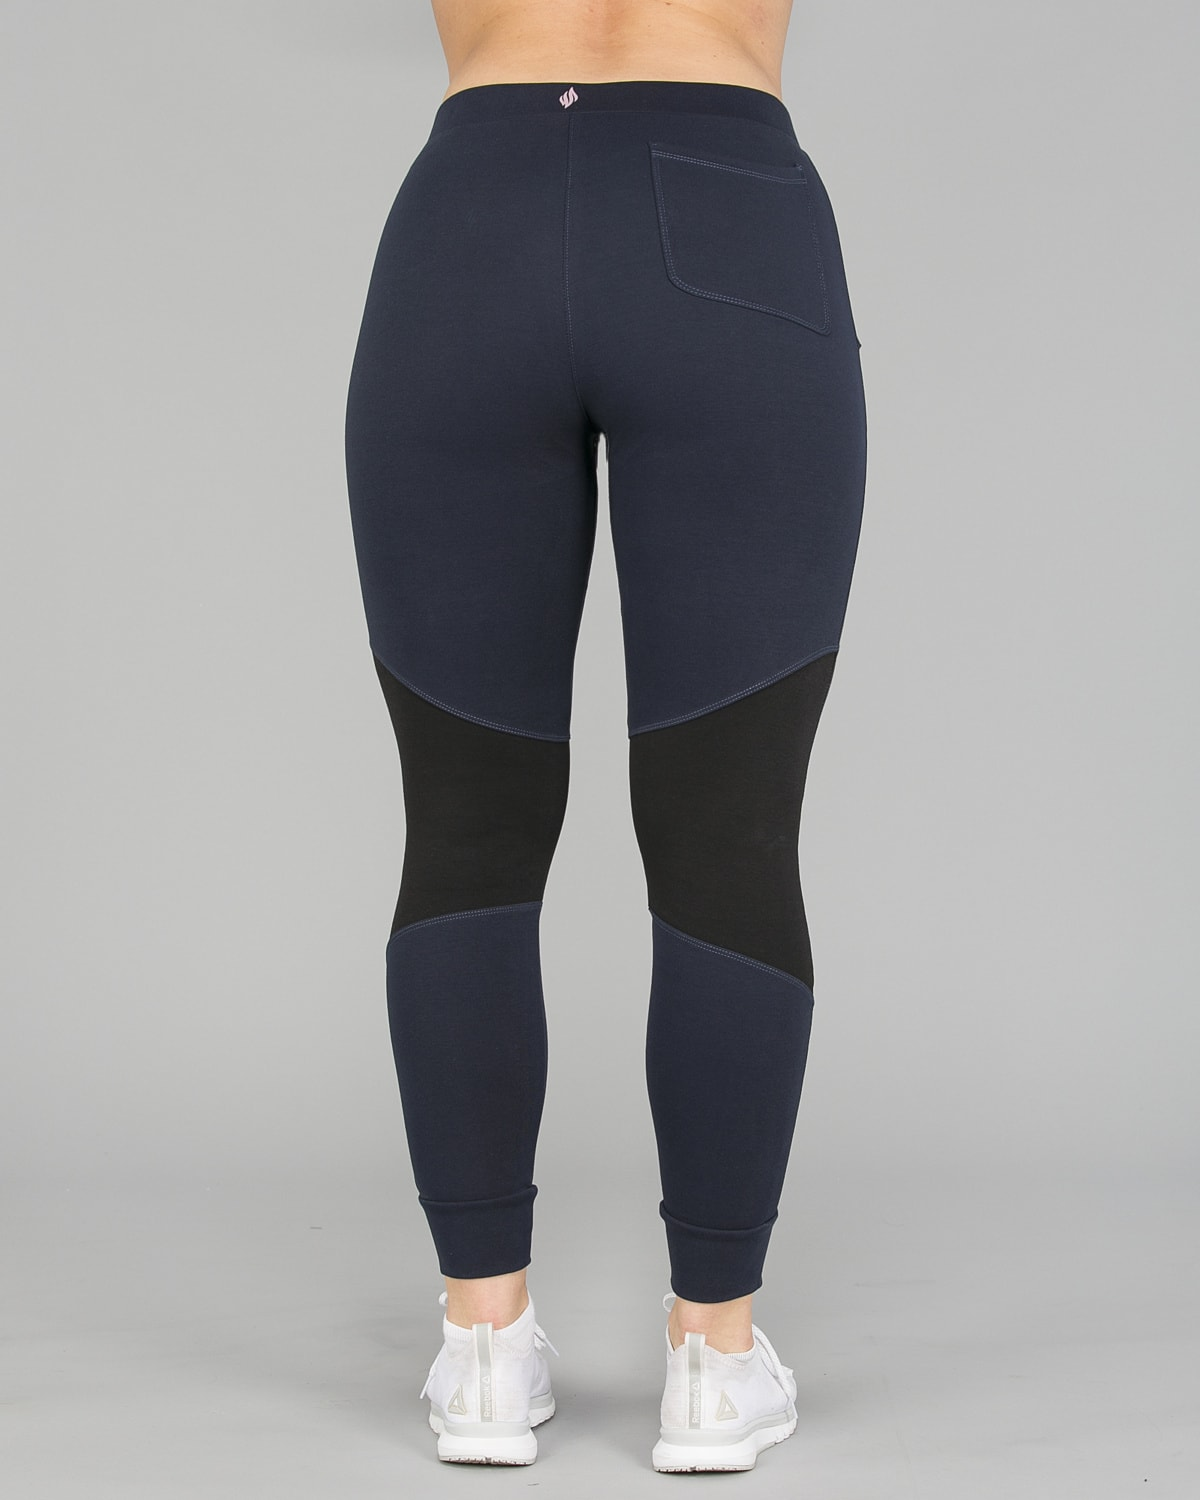 We Are Fit Pearl Pant3